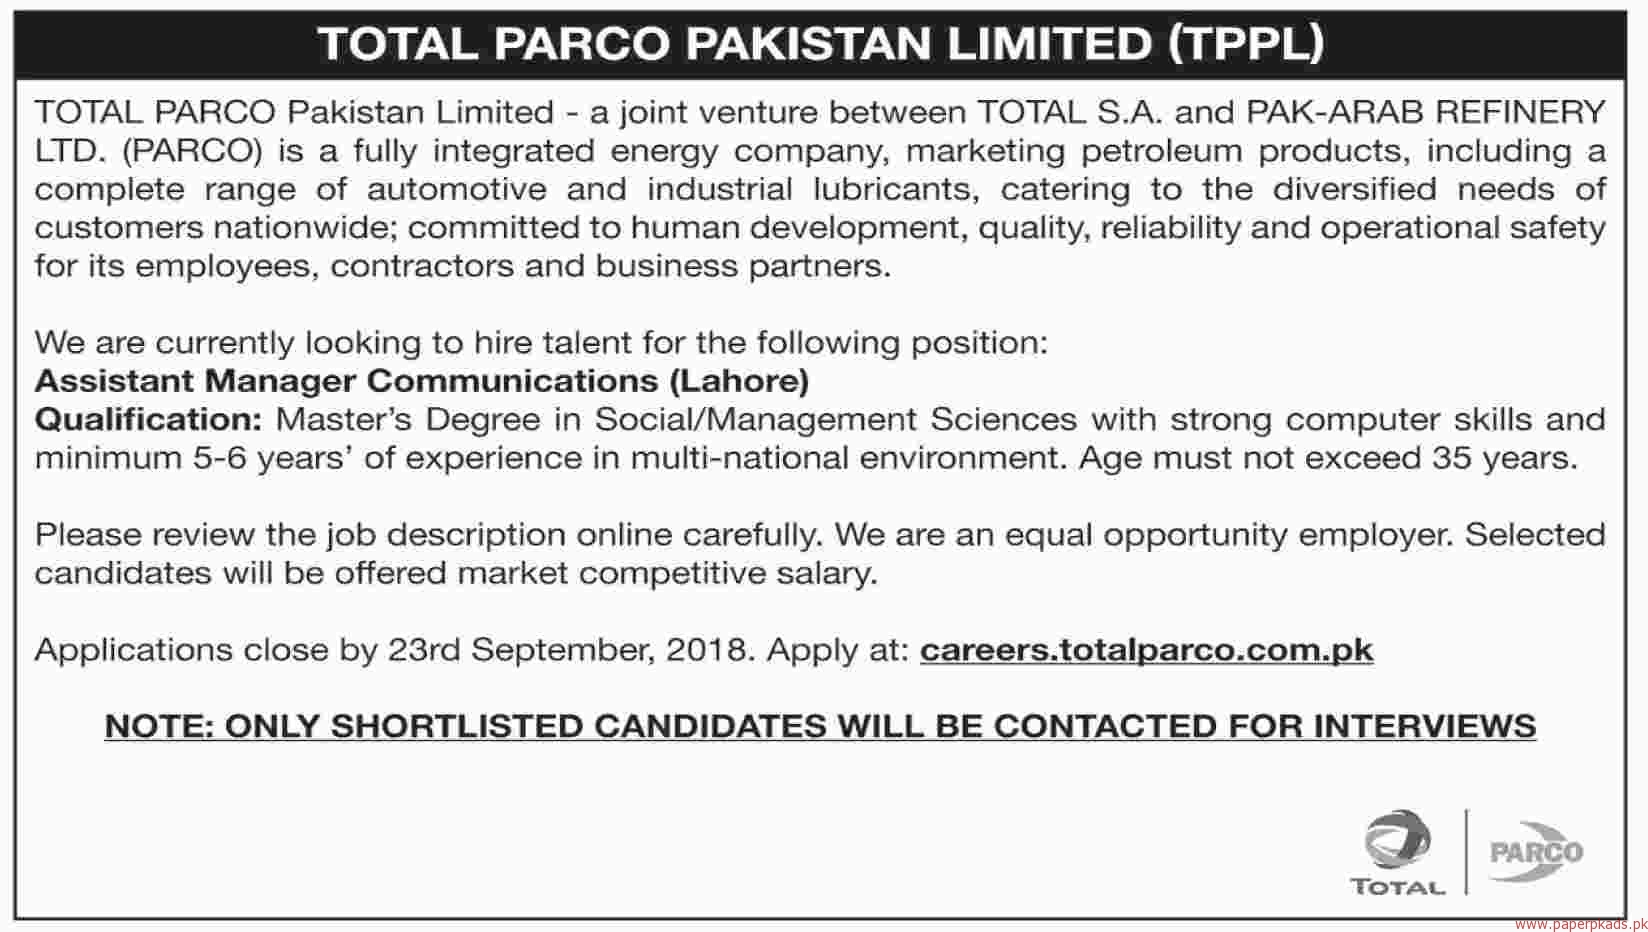 Total Parco Pakistan Limited Jobs 2018 Latest